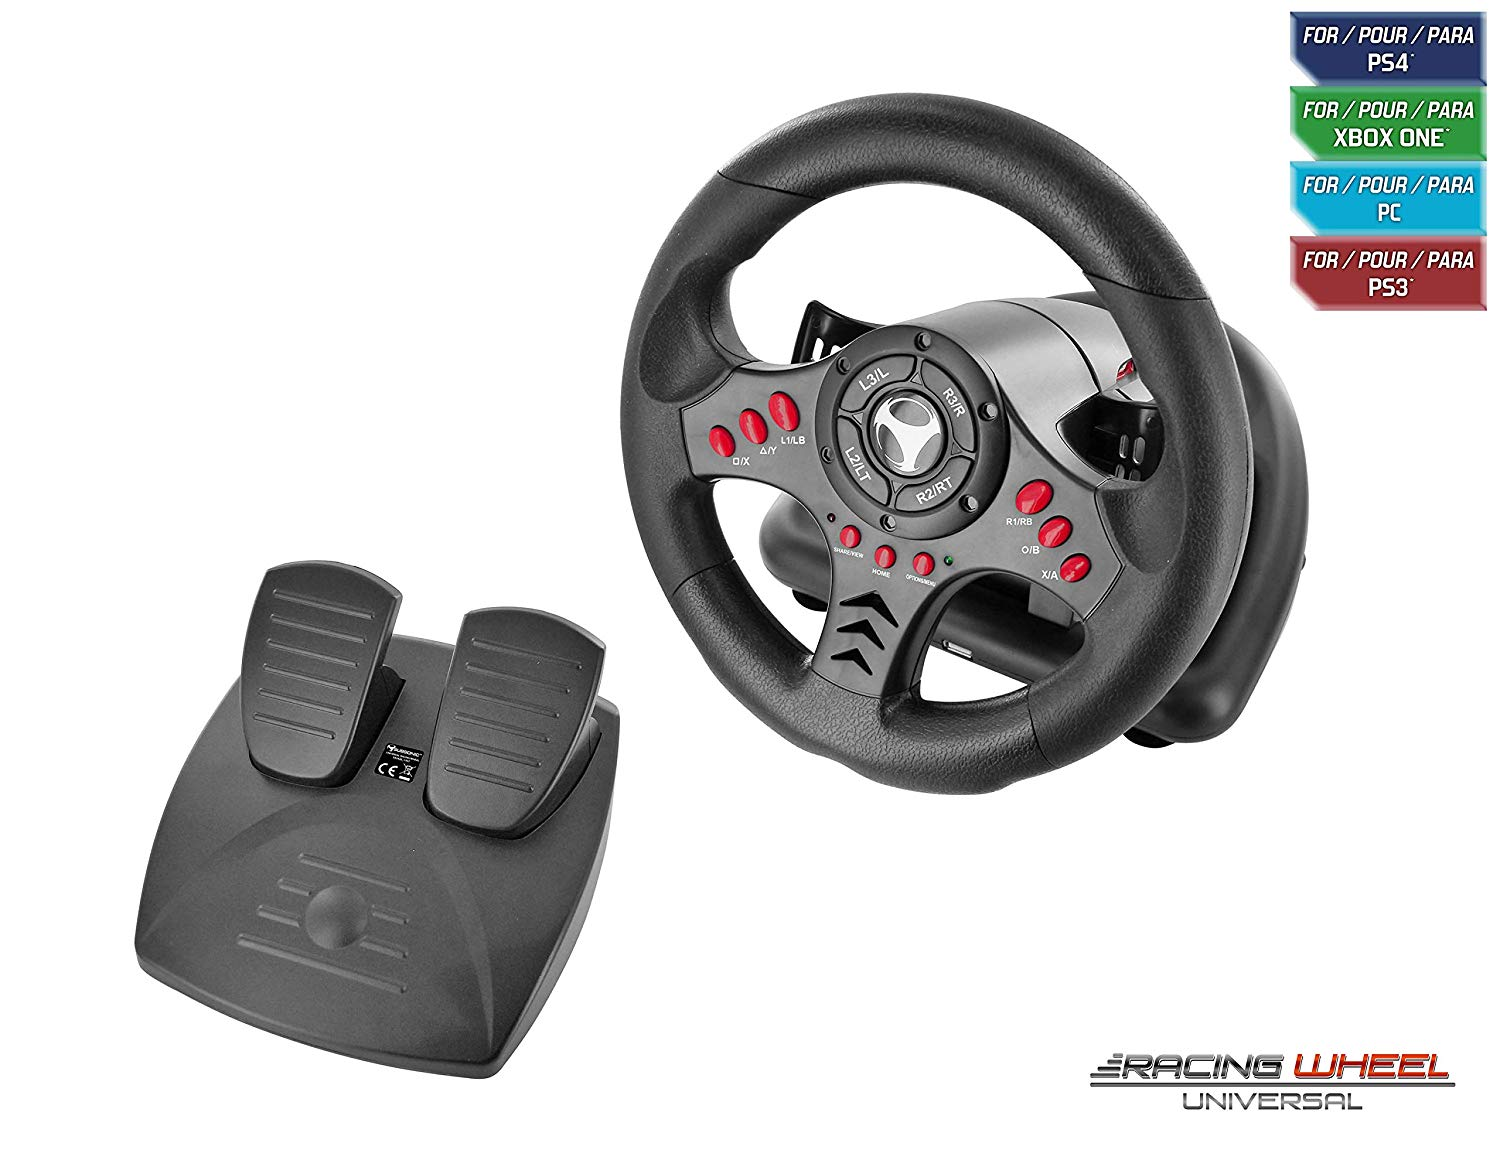 Руль Subsonic SA5426 Racing Wheel Universal with Pedals (Playstation 4, PS4 Slim, PS4 Pro, Xbox One, Xbox One S, PS3)